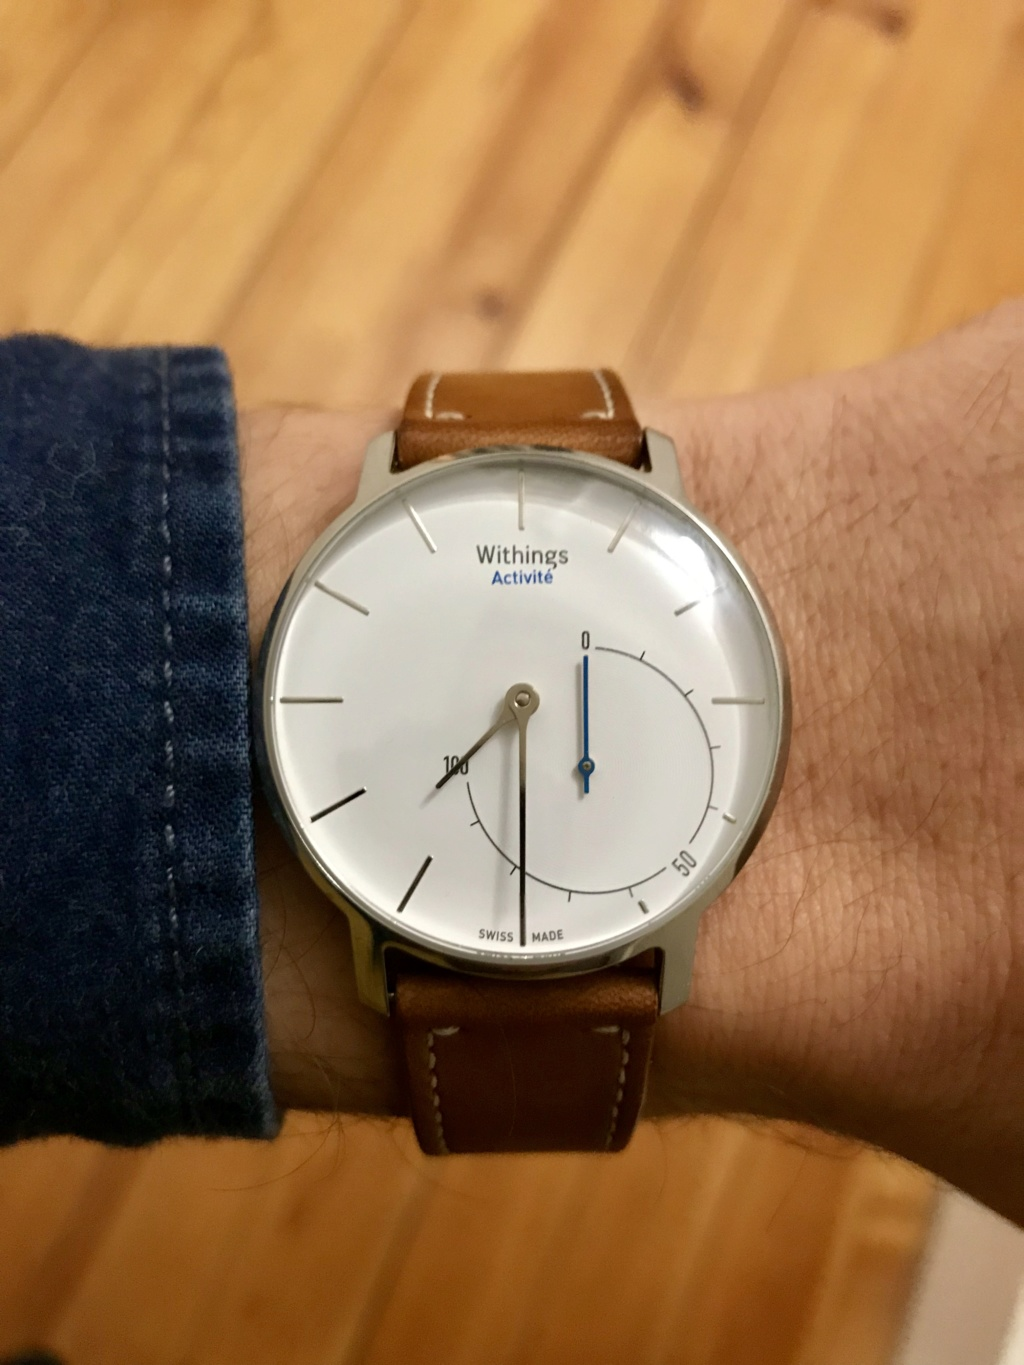 Montre Withings activite - Page 4 Img_0412